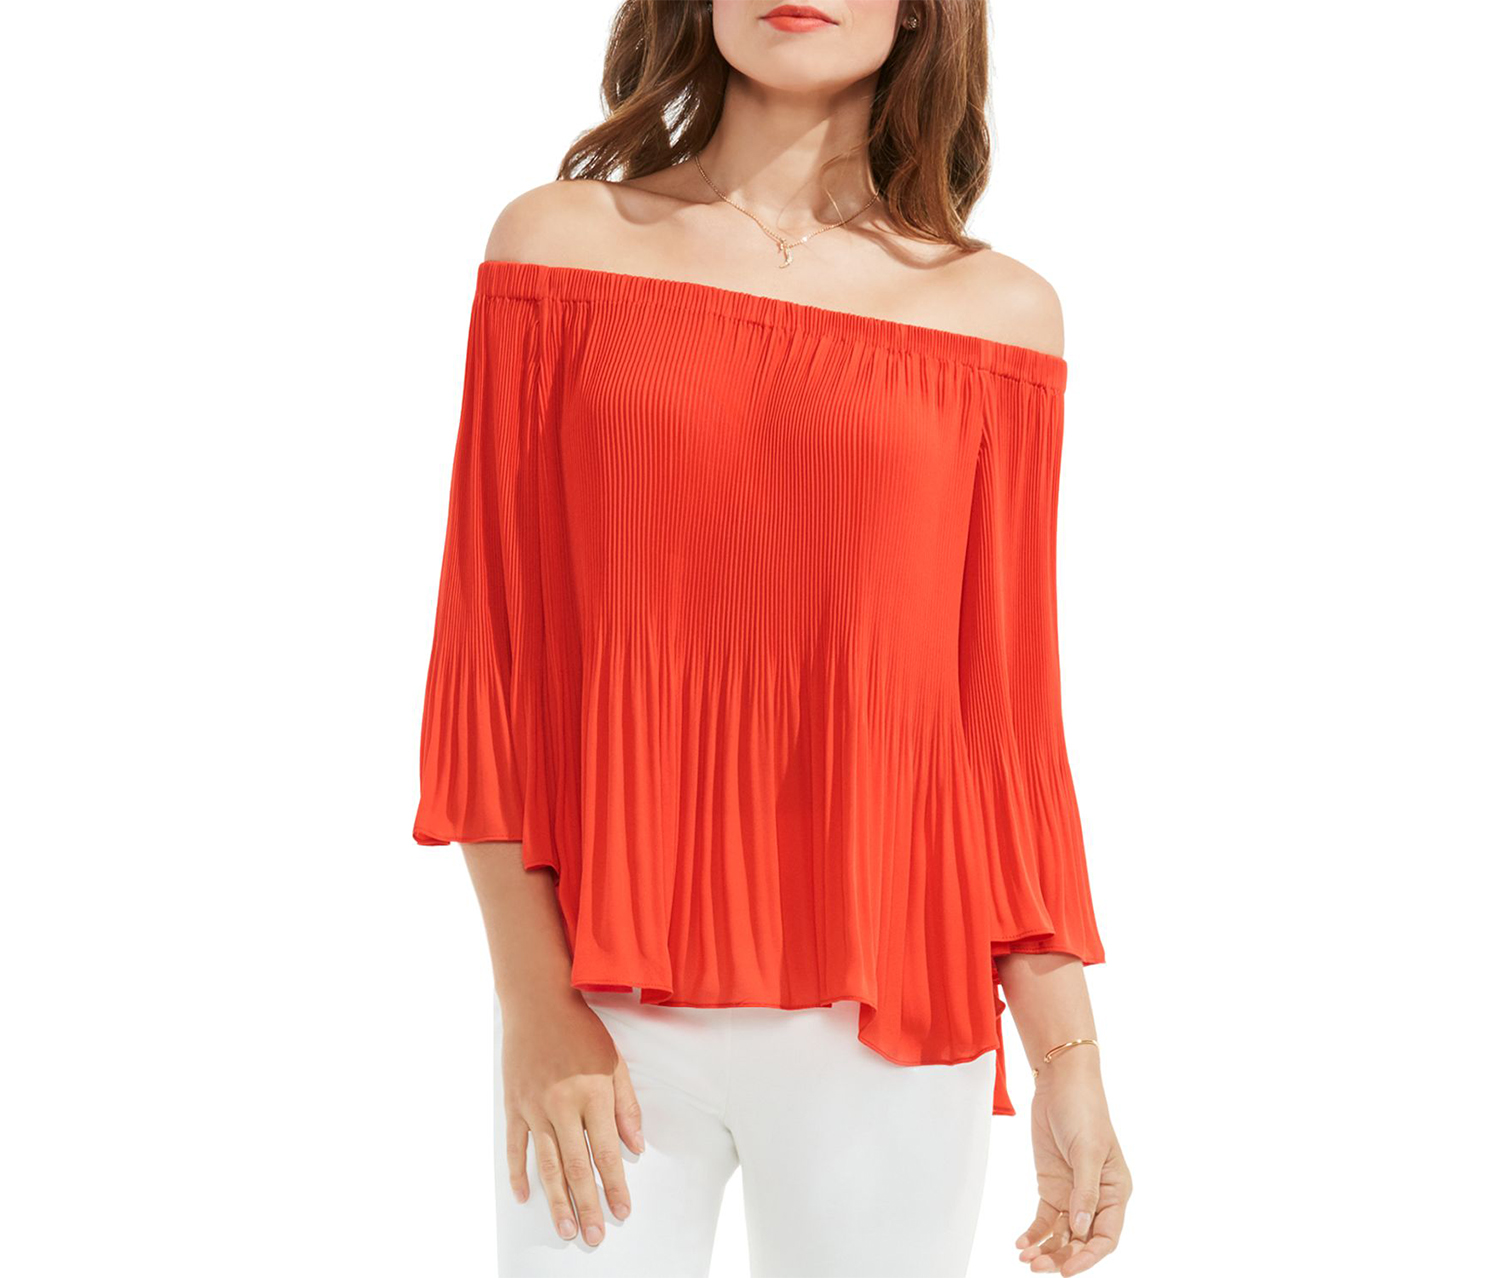 Vince Camuto Women's Off-The-Shoulder Top, Red